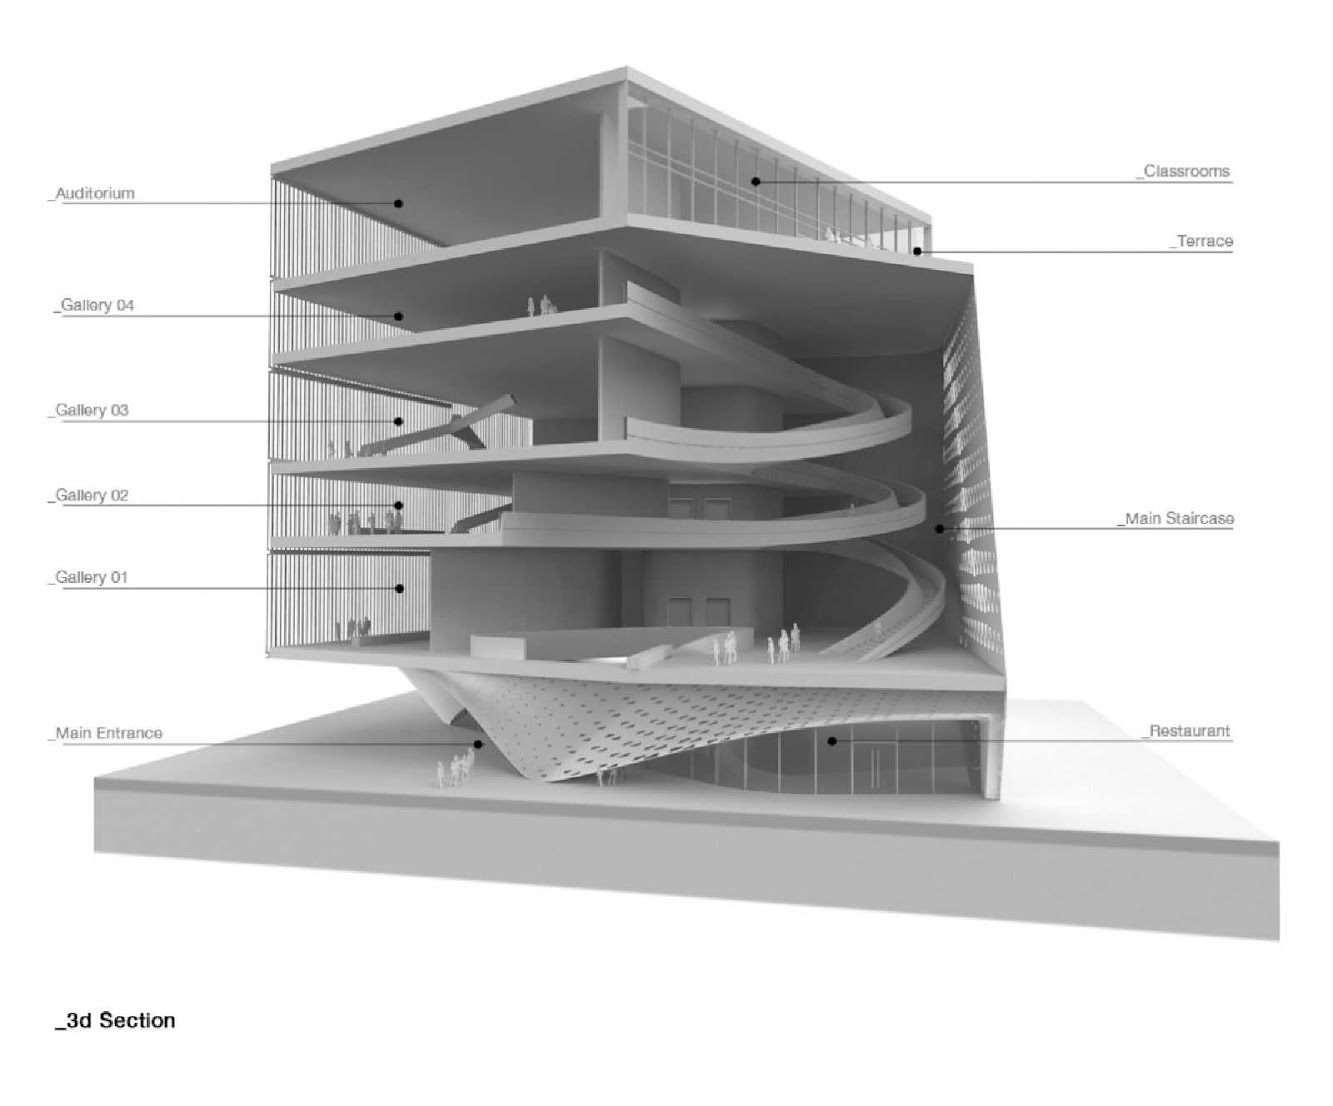 05 Cultural Center of Chapultepec Competition Entry